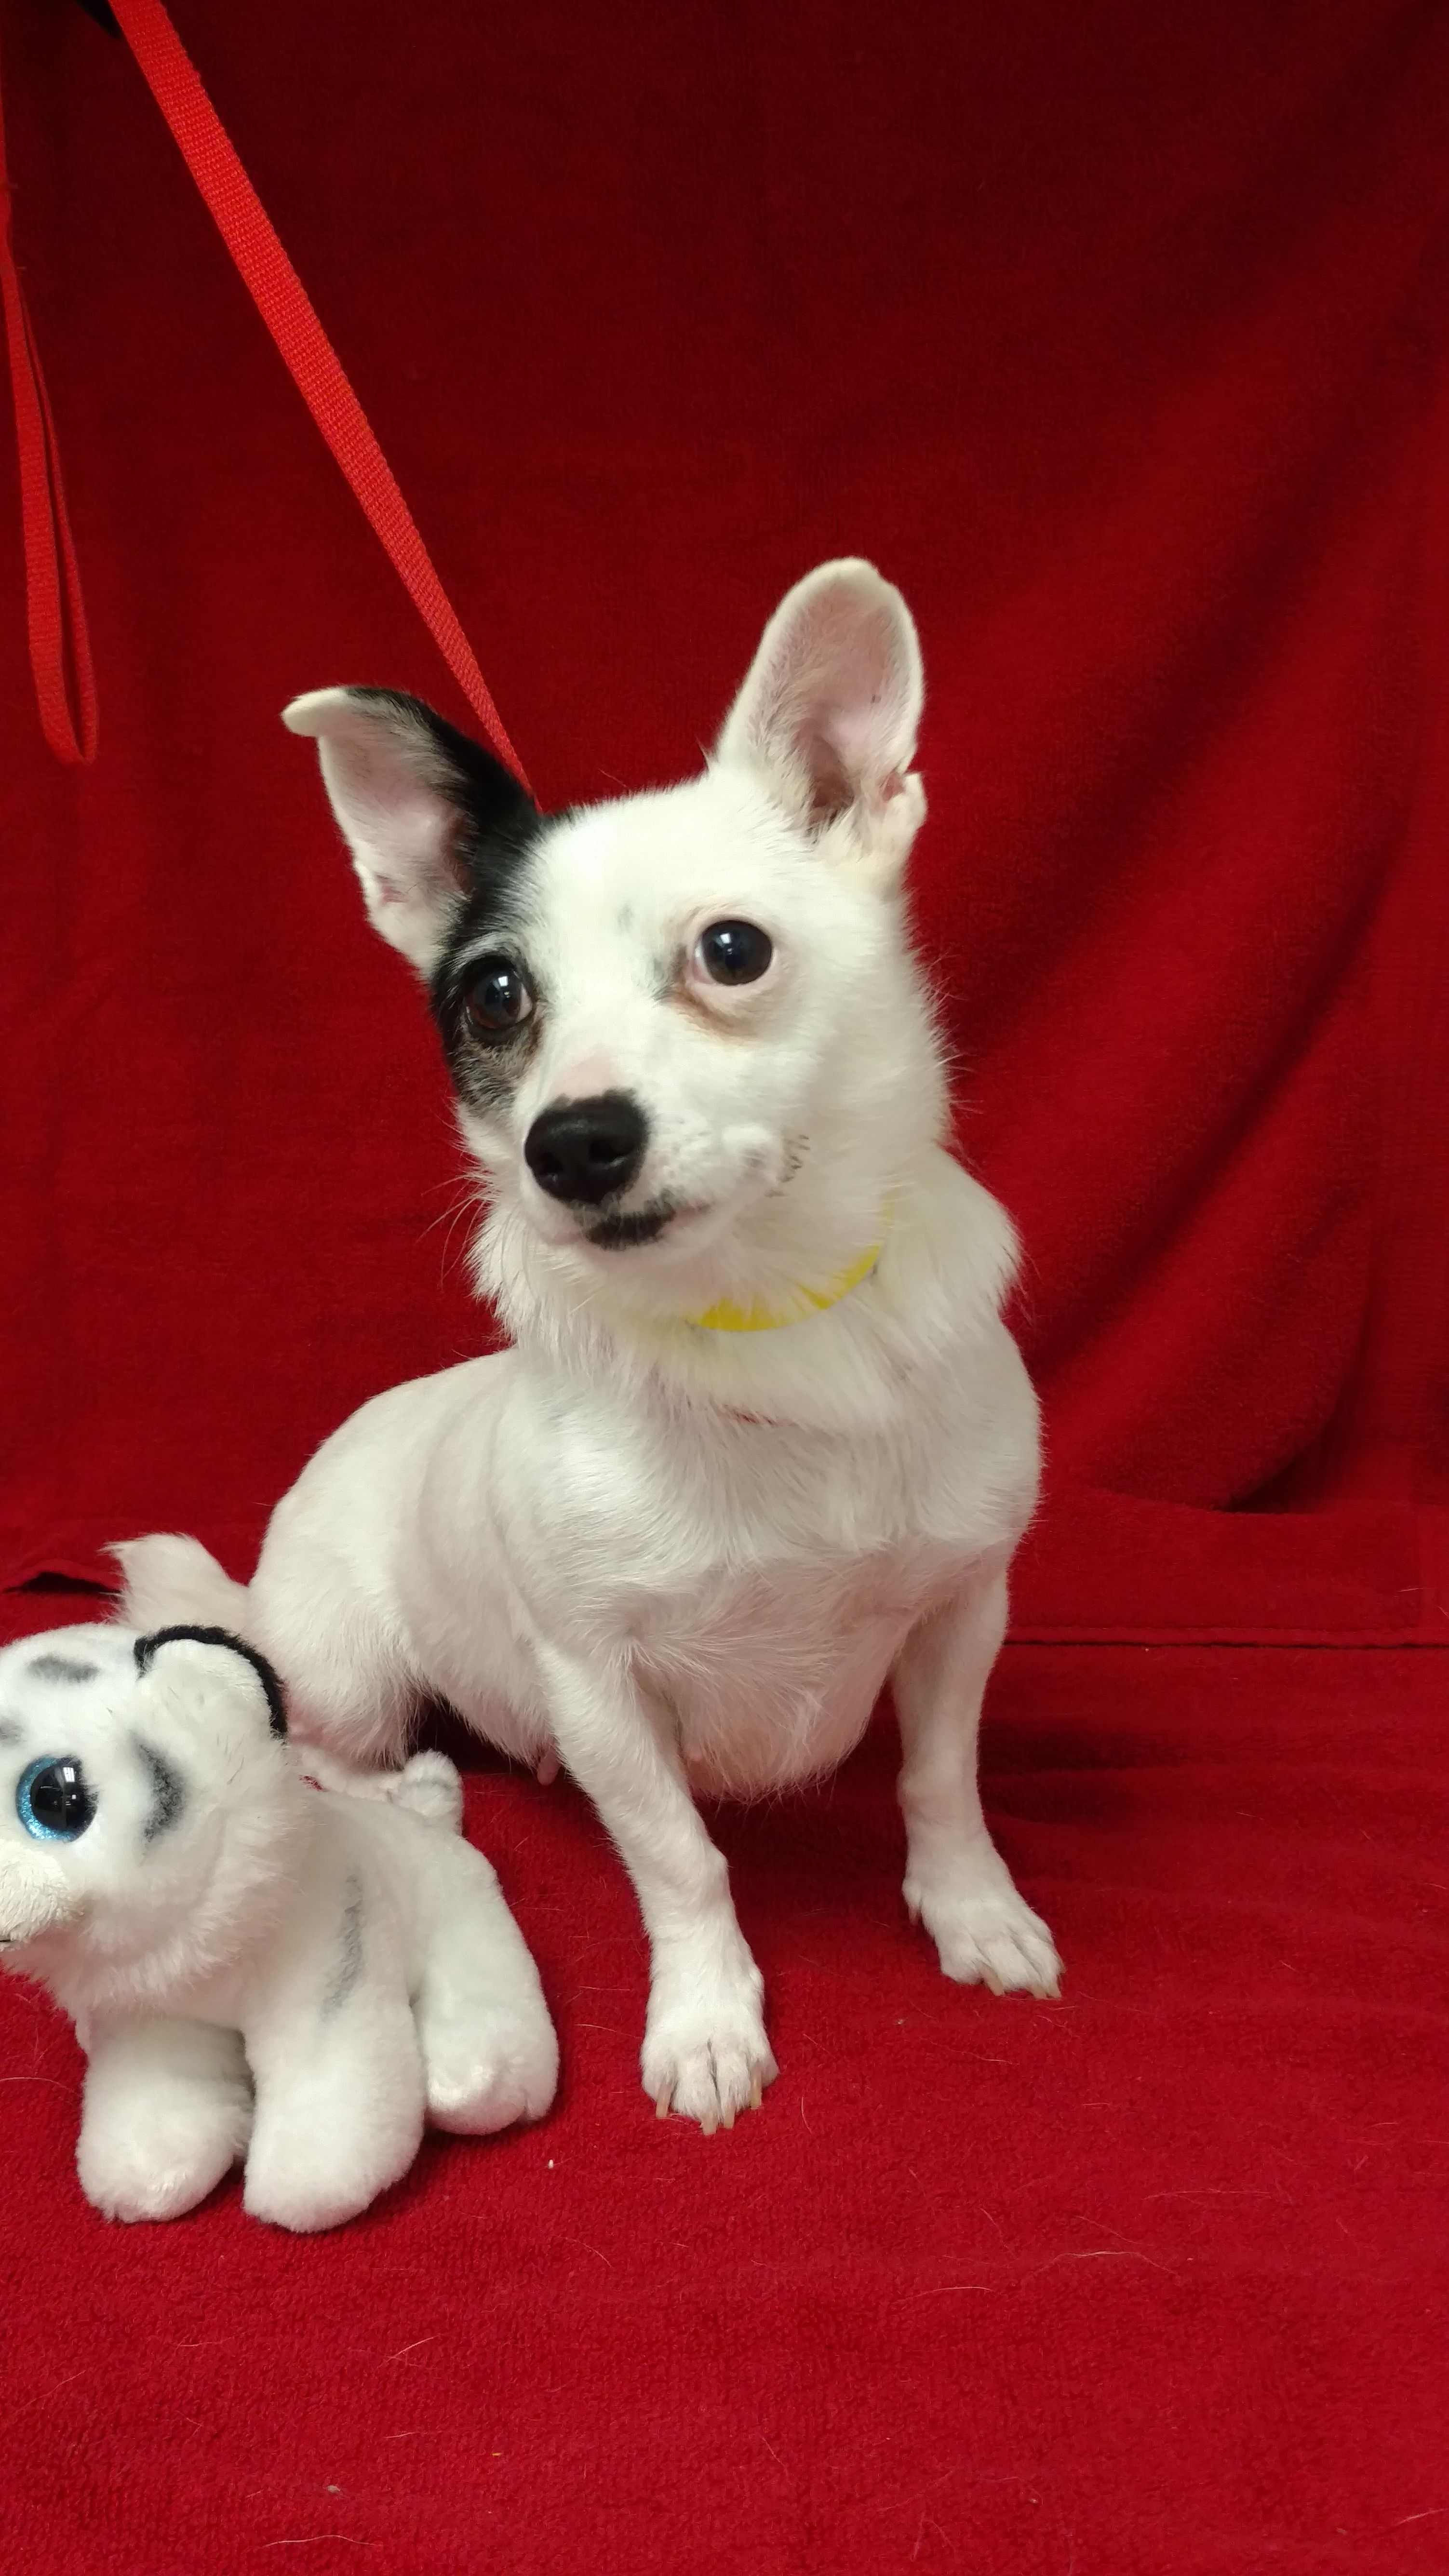 Andi Is A 2 Year Old 8 Pound Female Chihuahua Mix She Gets